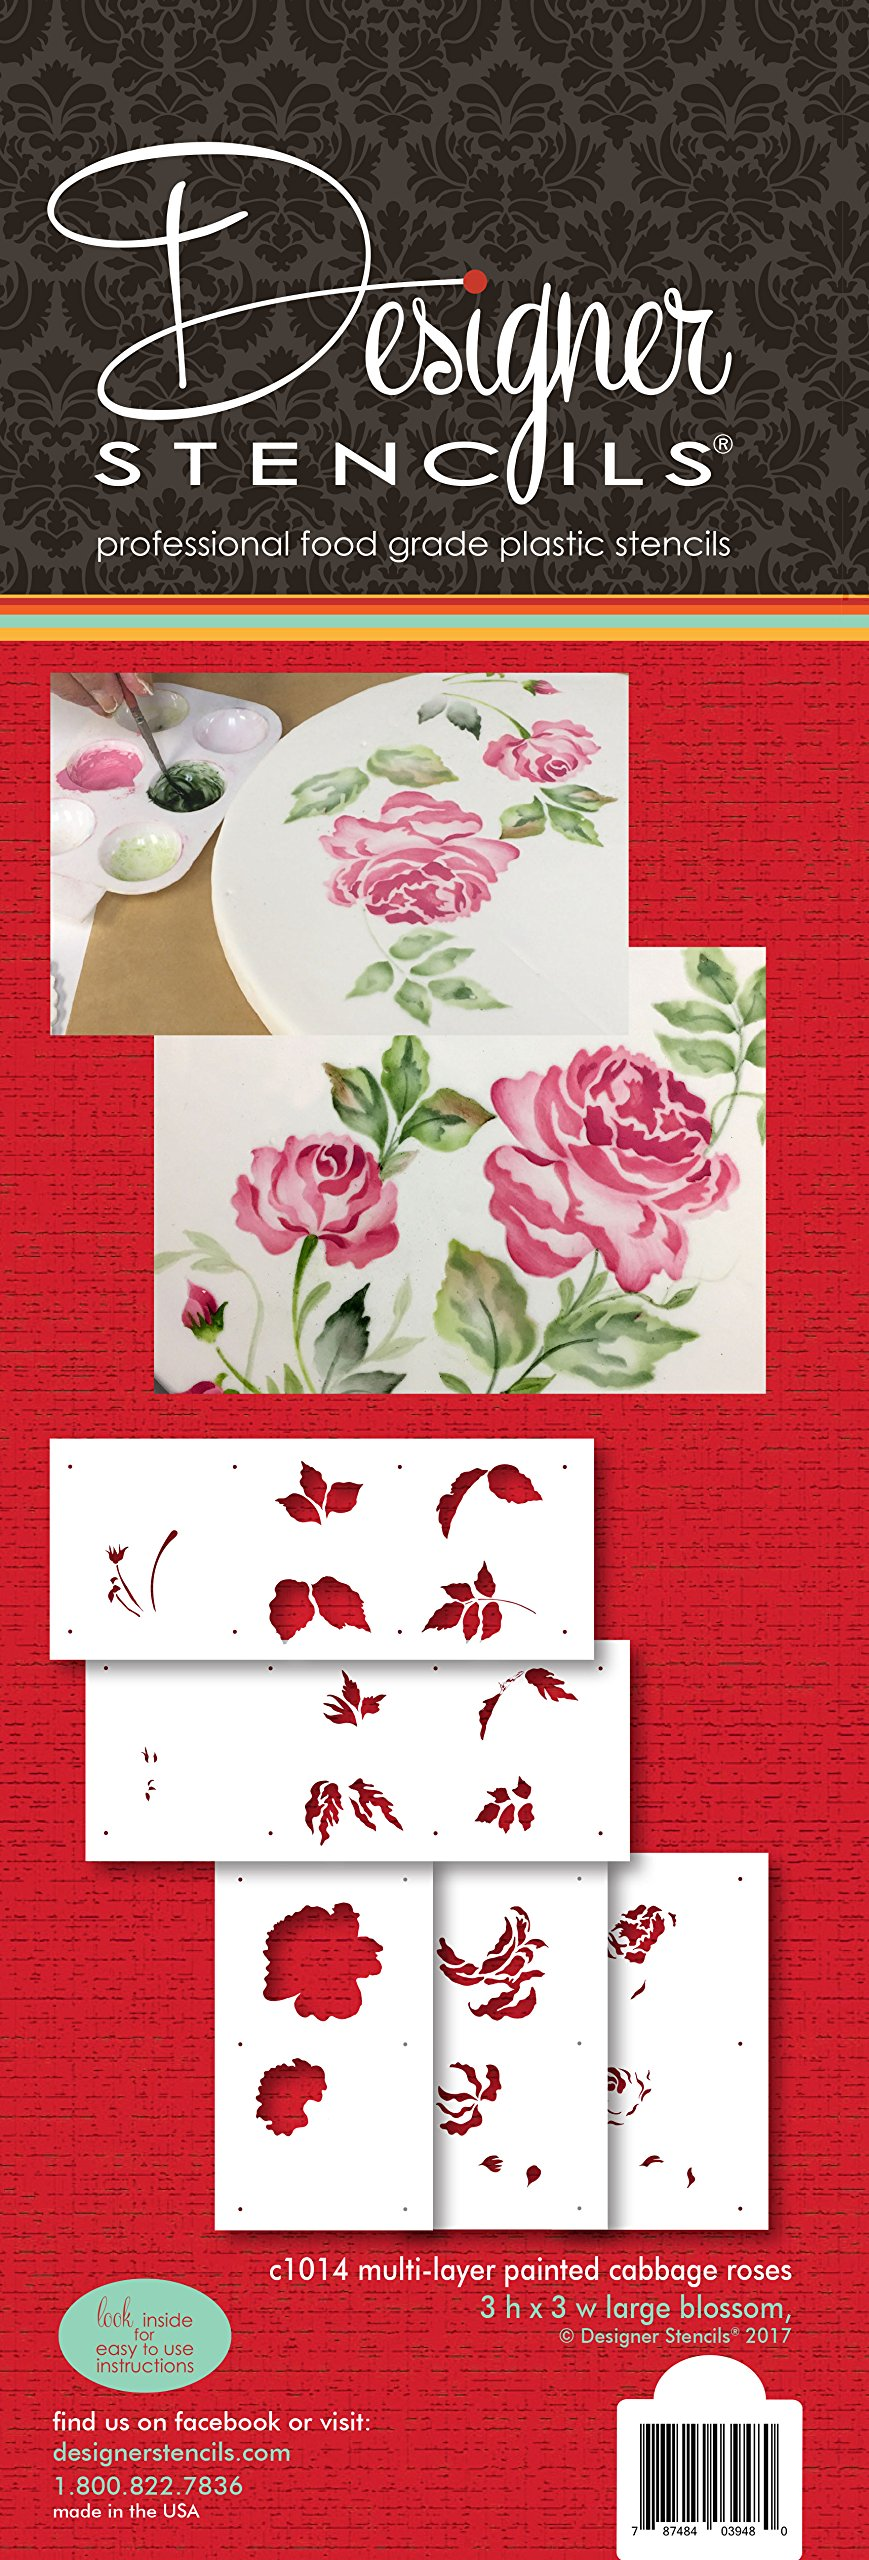 Multi-layer Painted Cabbage Roses Cake Stencil C1014 by Designer Stencils